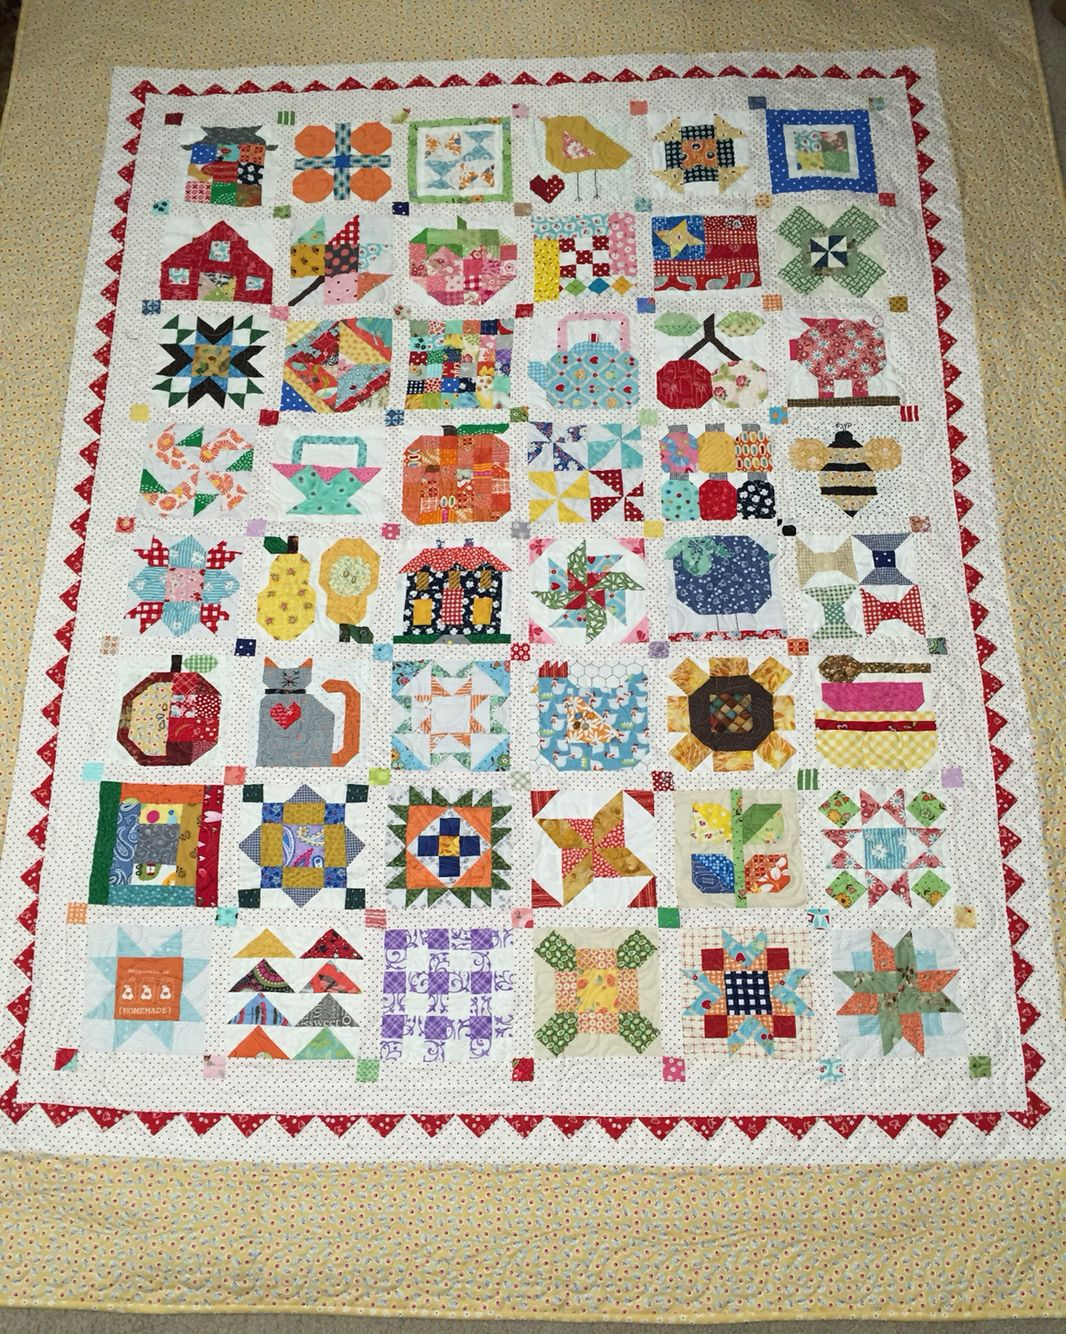 Farm girl vintage quilt by Lori Holt. I use bonus blocks still ... : what is quilt used for - Adamdwight.com